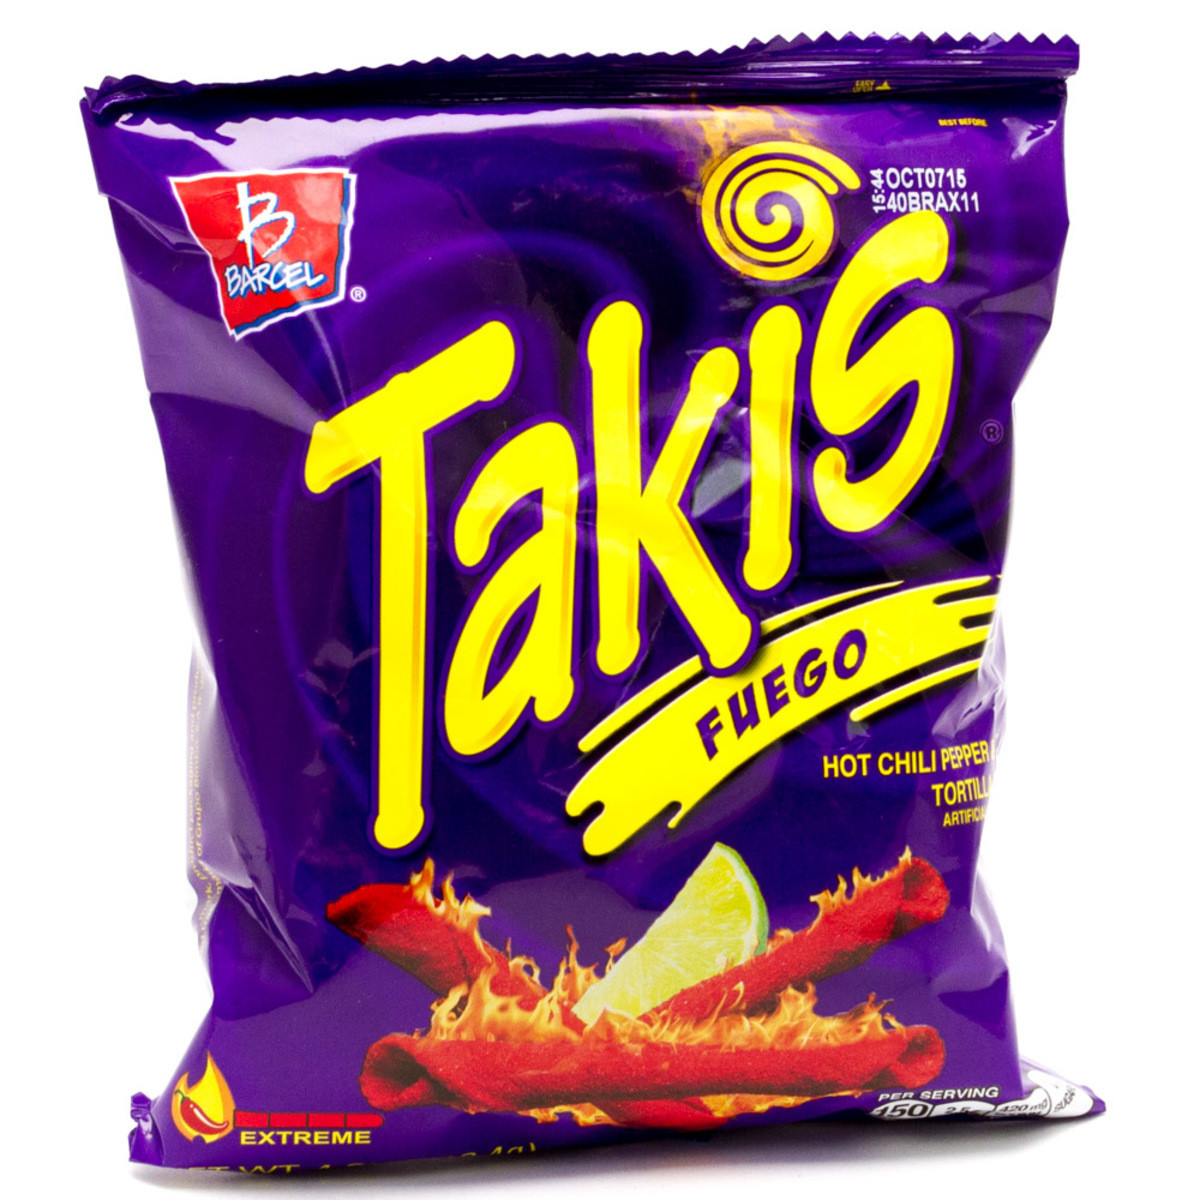 Takis and peanut butter. Anyone else dip these in peanut butter?.. >Anyone else dip these in peanut butter? you what?